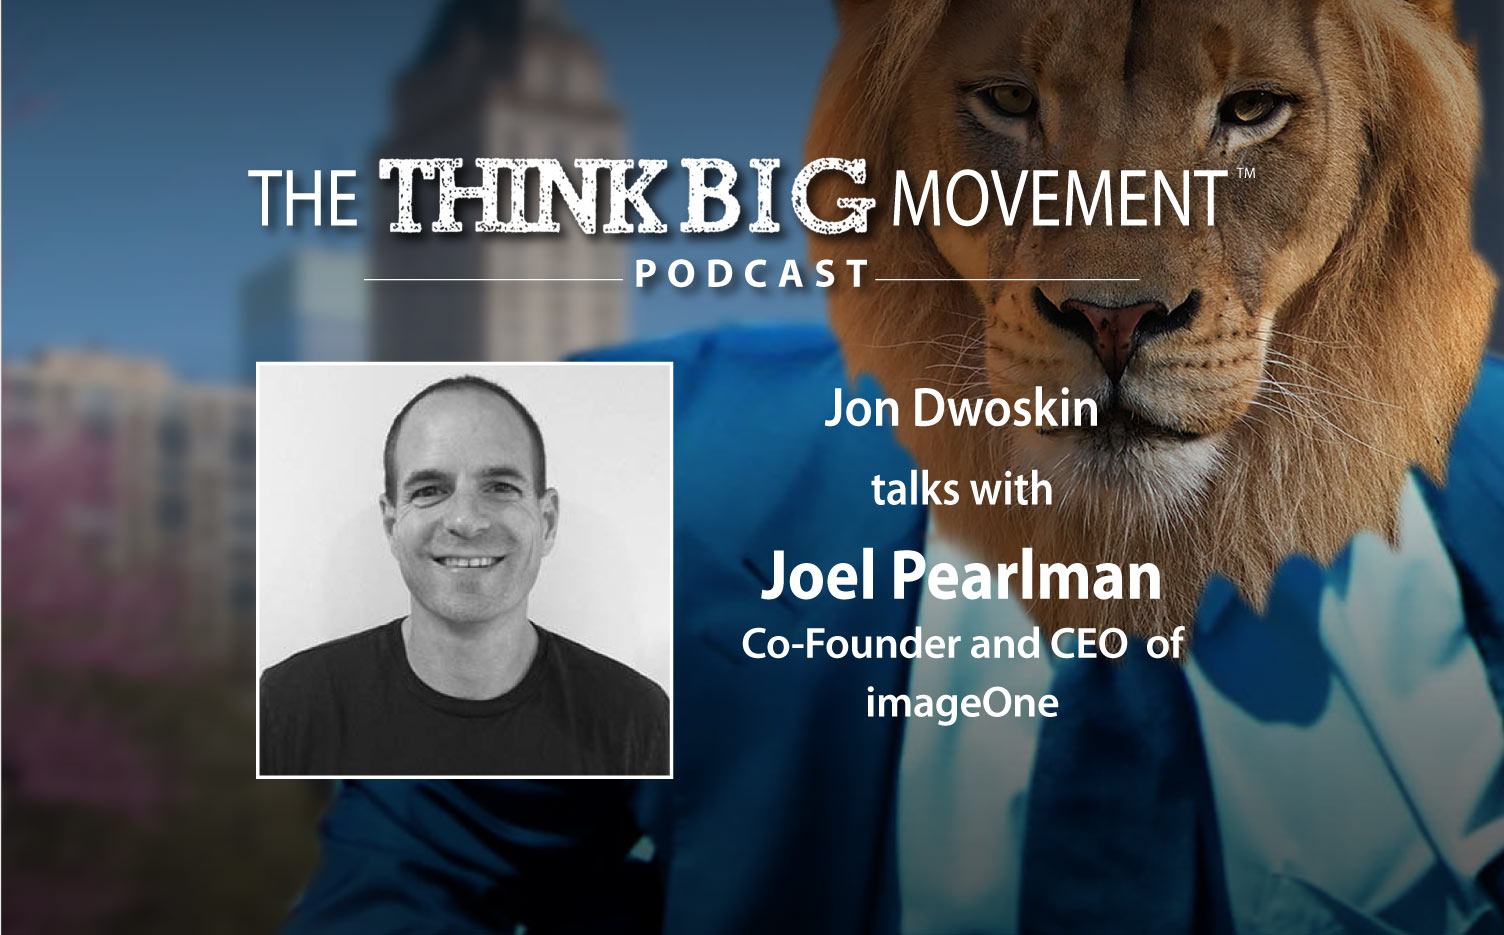 Think Big Movement Podcast - Jon Dwoskin Interviews